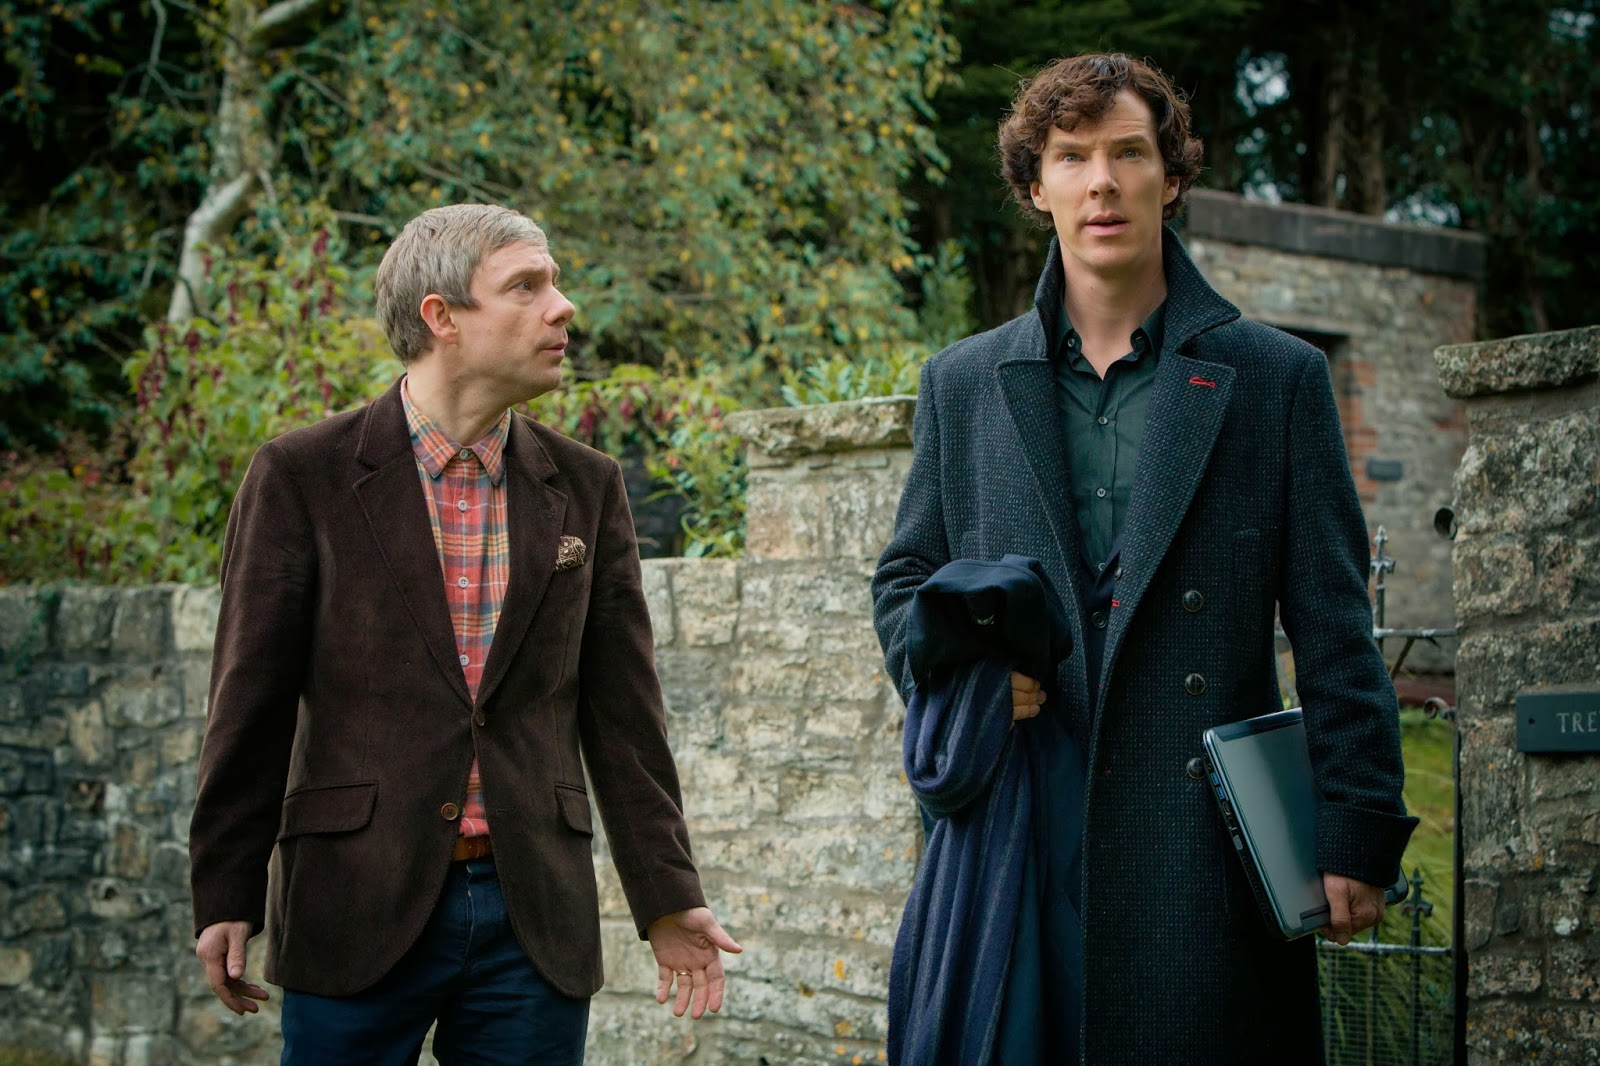 Benedict Cumberbatch and Martin Freeman as Sherlock Holmes and John Watson in BBC Sherlock Season 3 Episode 3 His Last Vow